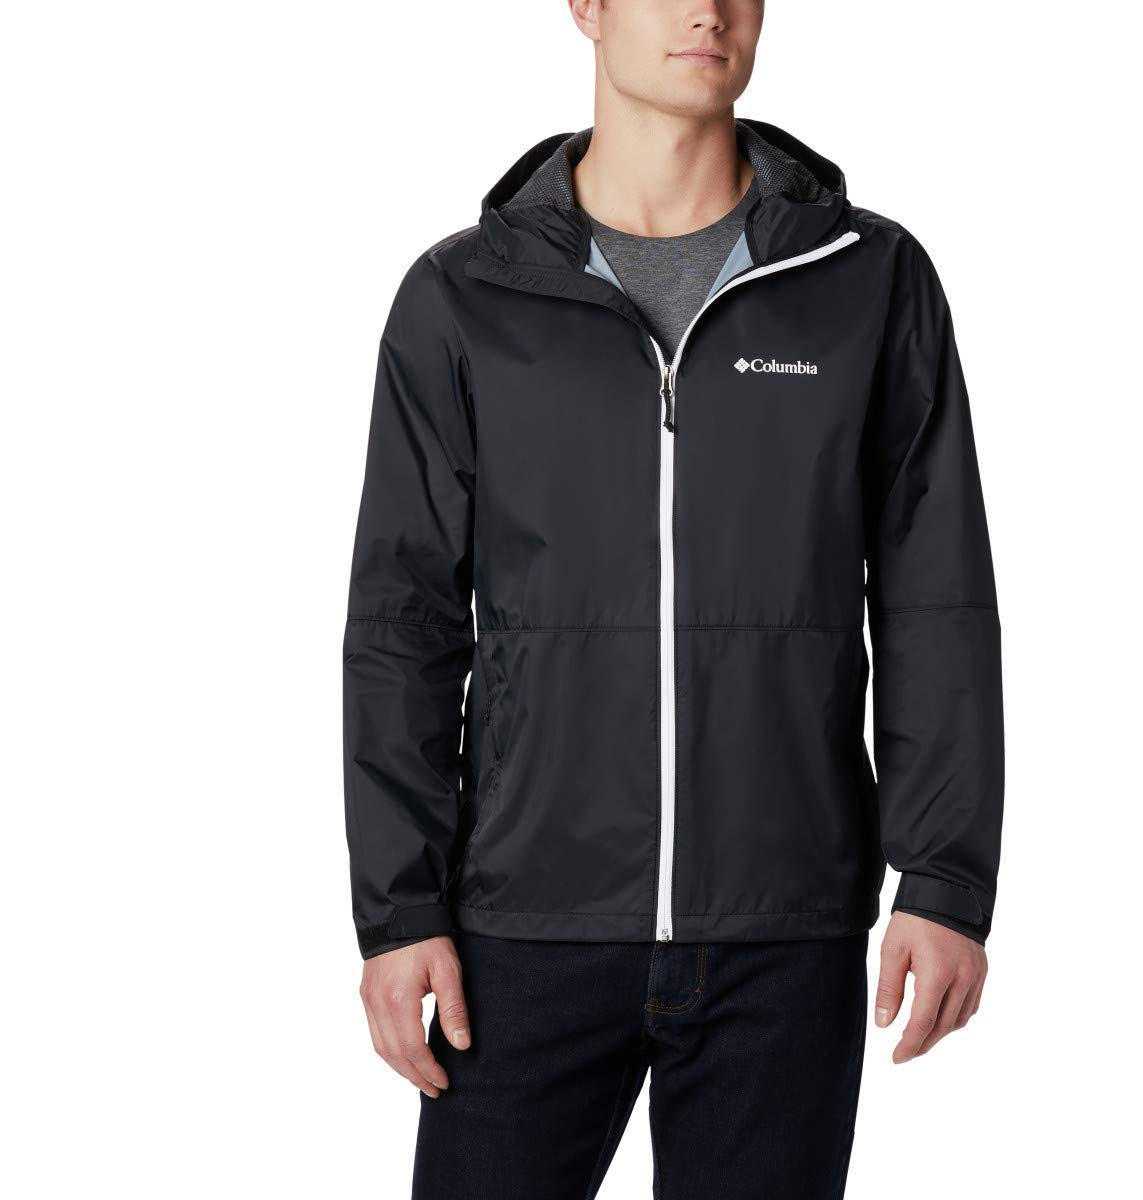 Columbia Mountain Jacket Black Medium